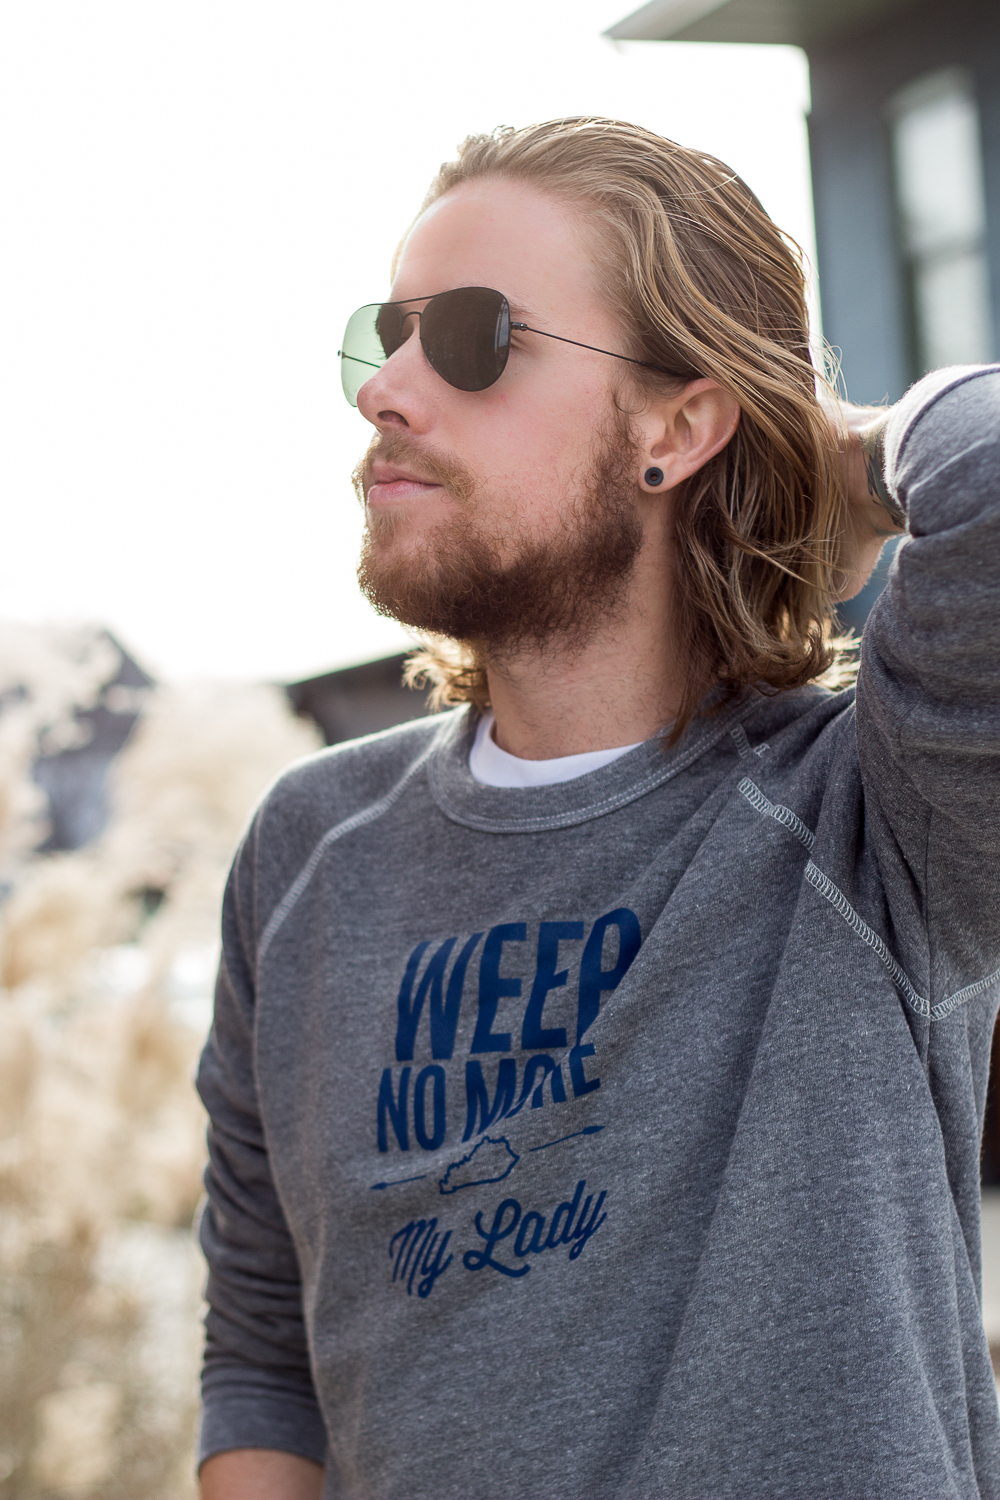 The Kentucky Gent, a Louisville, Kentucky men's life and style blogger, in Shop Local KY Weep No More My Lady Sweatshirt, Levi's Made and Crafted Denim, Converse Chuck Taylors, and Ray-Ban Aviator Sunglasses.